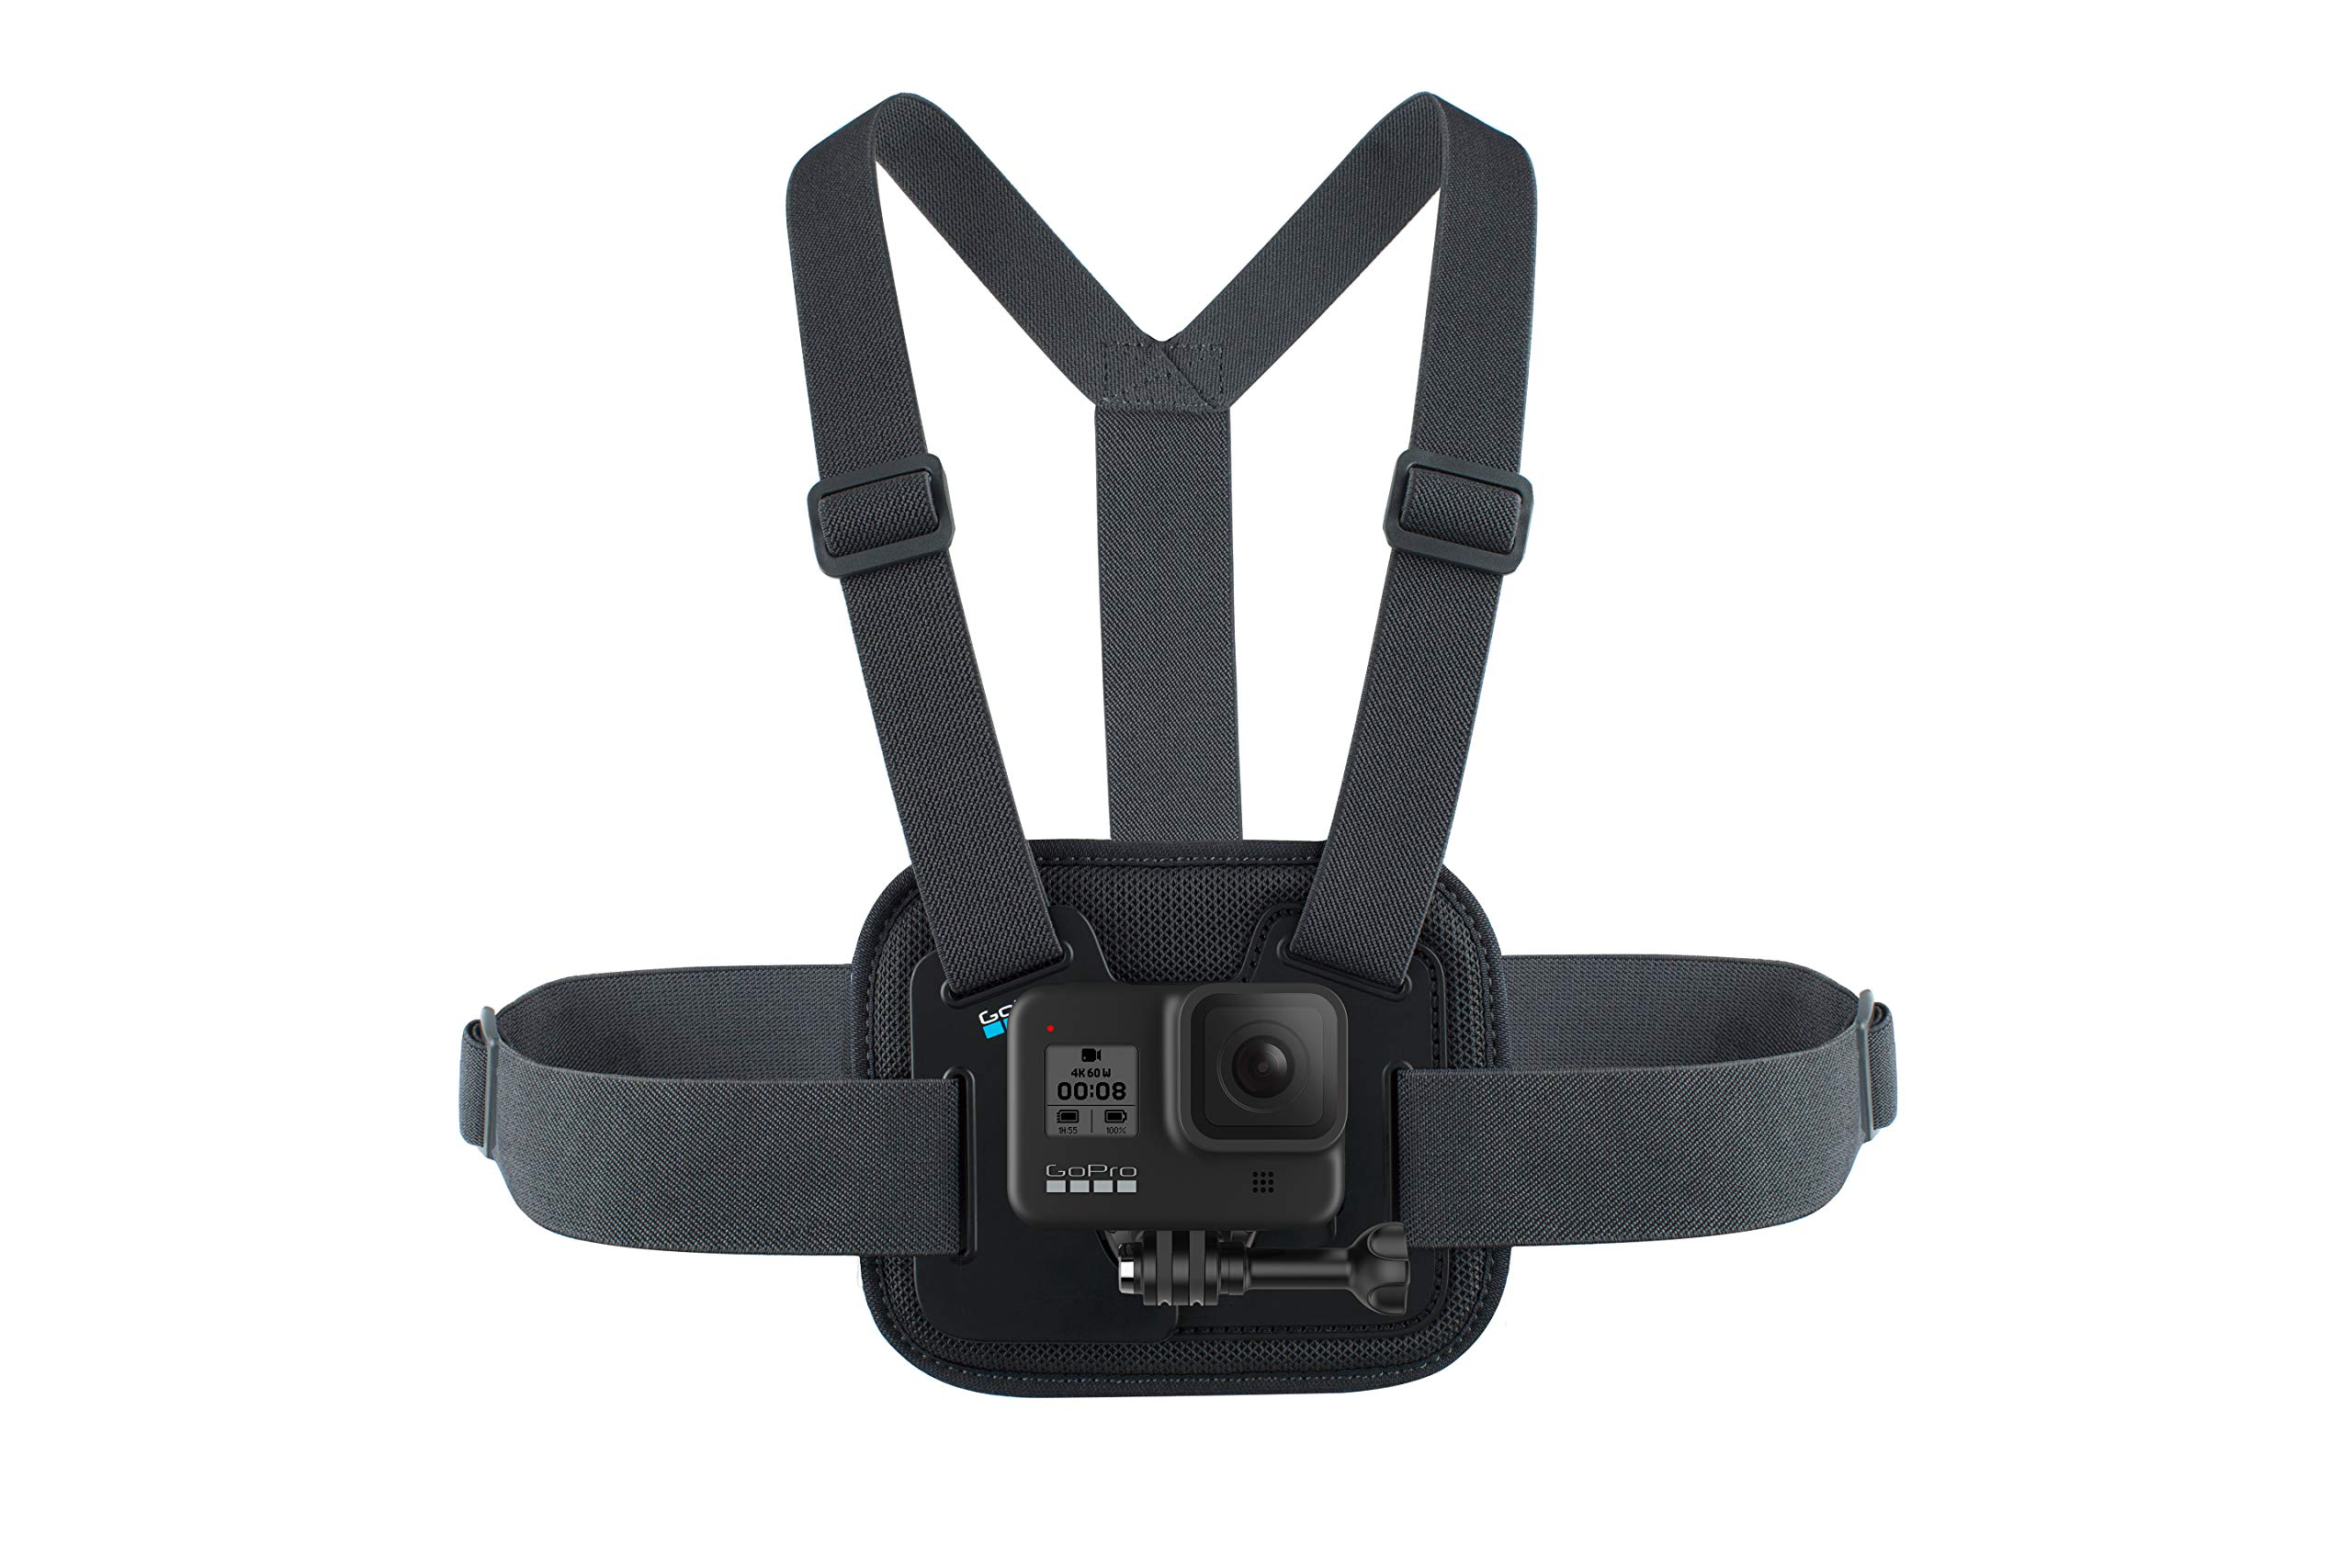 GoPro Chest Mount Harness (All GoPro Cameras) - Official GoPro Mount by GoPro